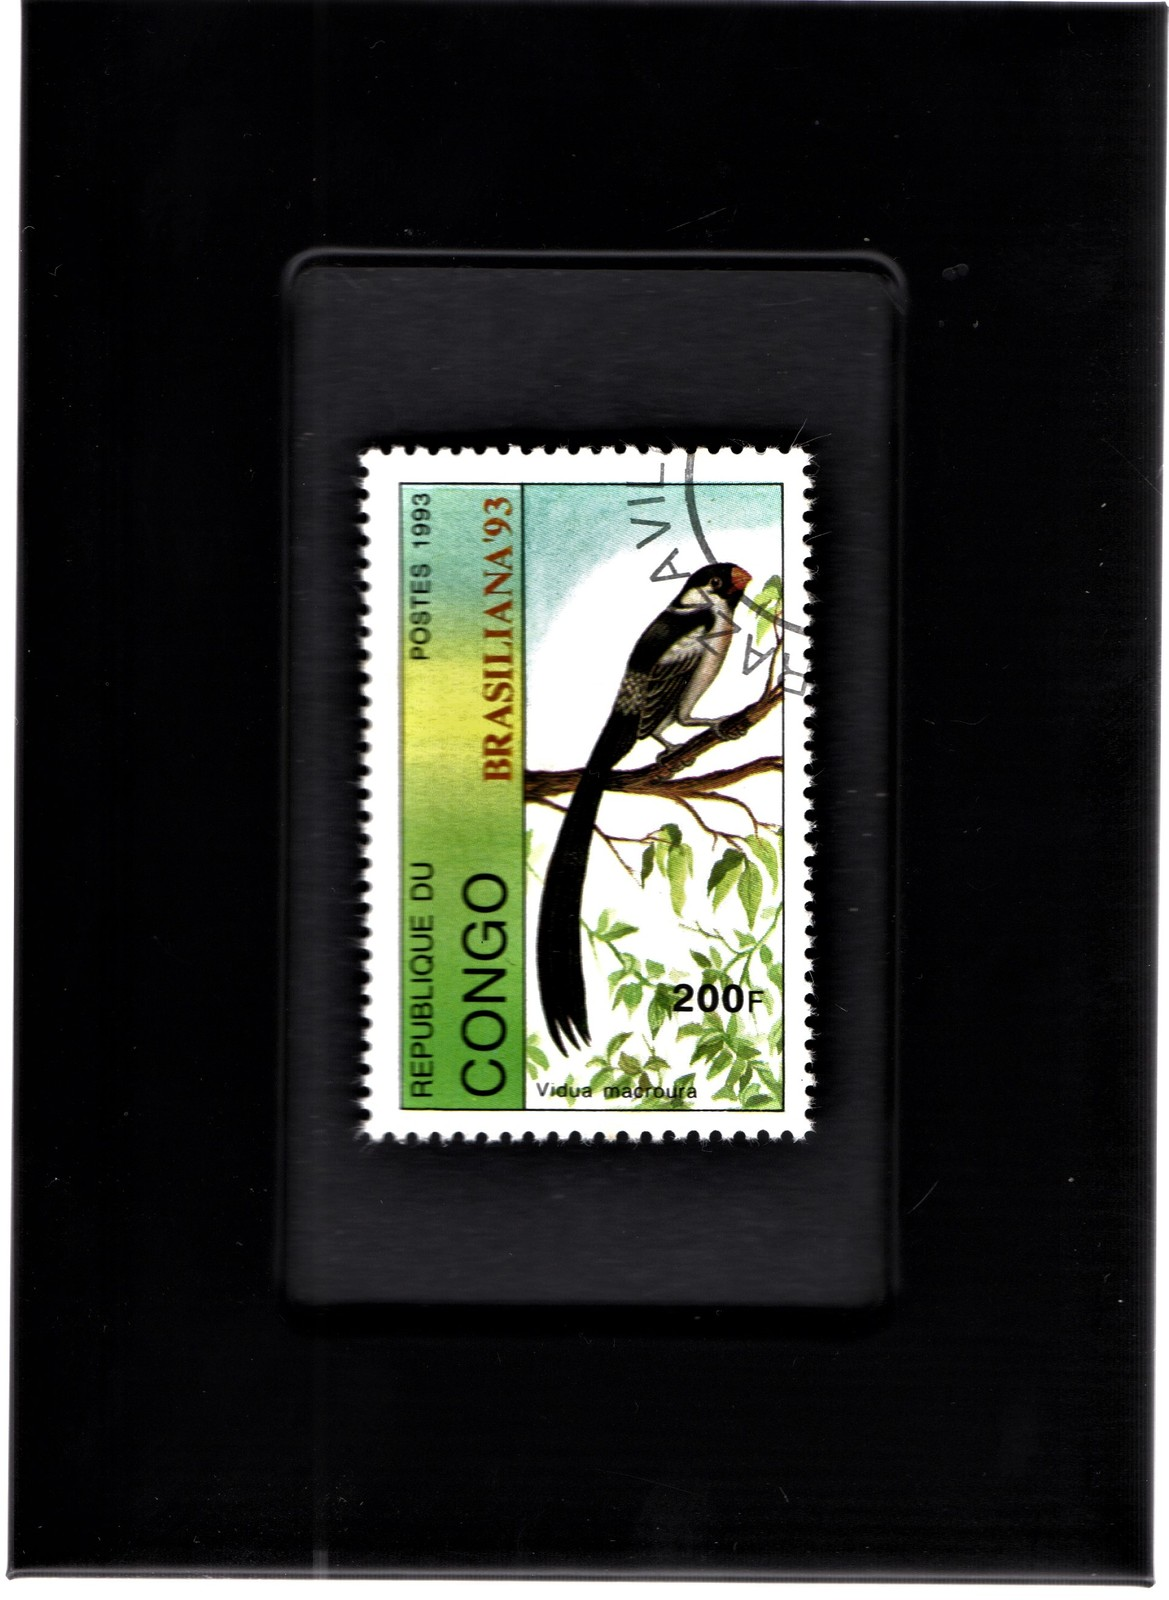 Primary image for Tchotchke Framed Stamp Art Collectable Postage Stamp- Pin-Tailed Whydah